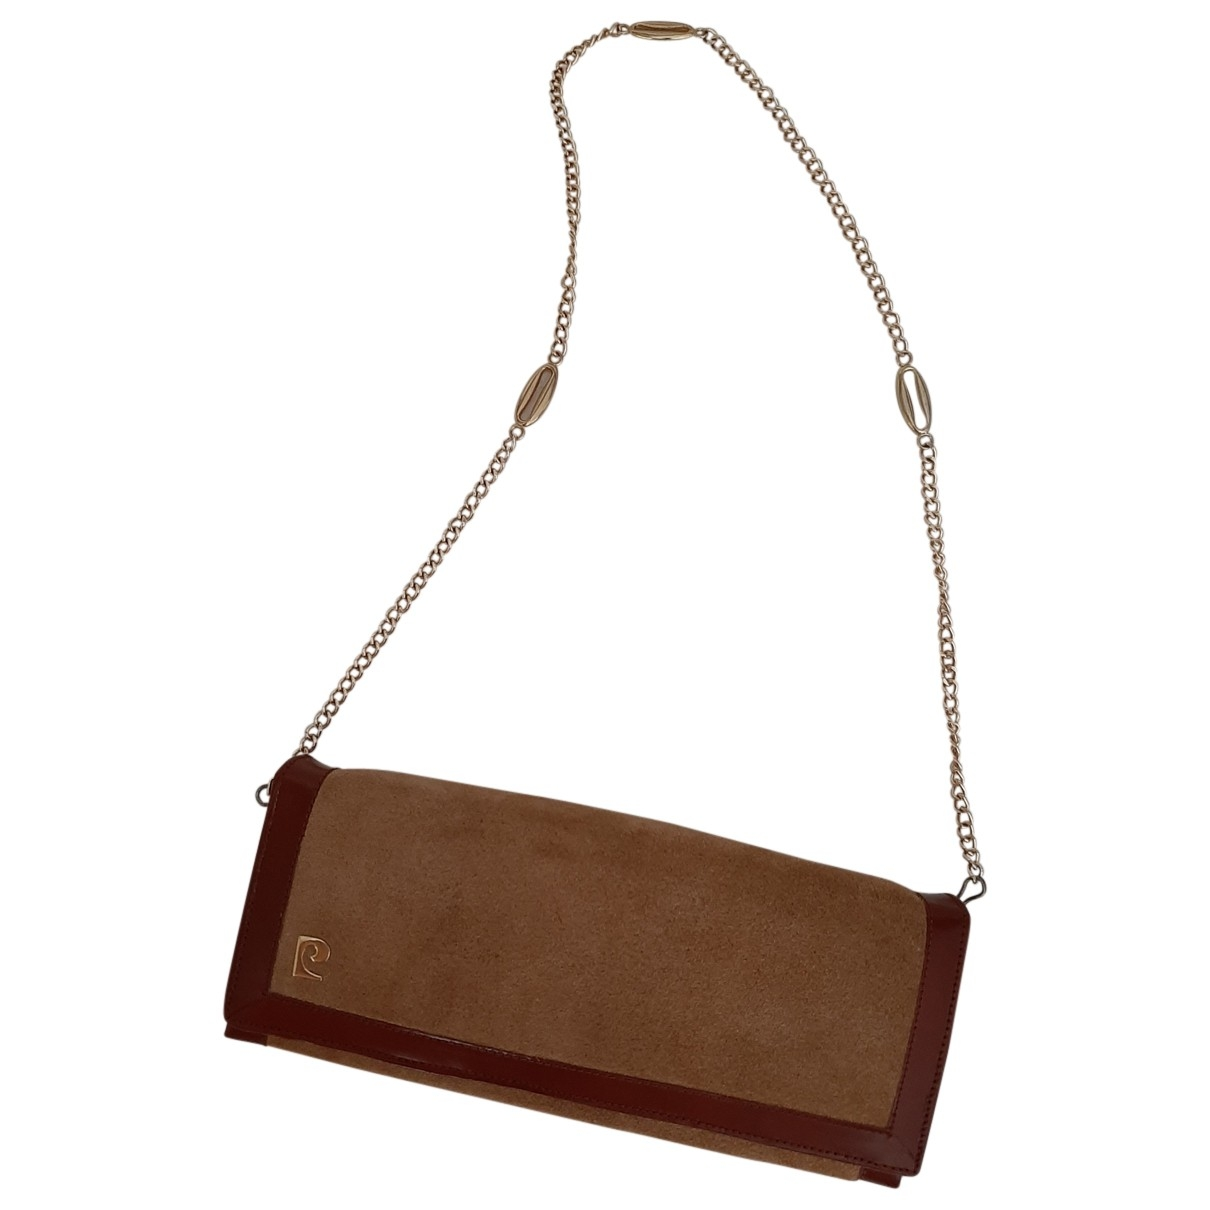 Pierre Cardin \N Camel Suede Clutch bag for Women \N